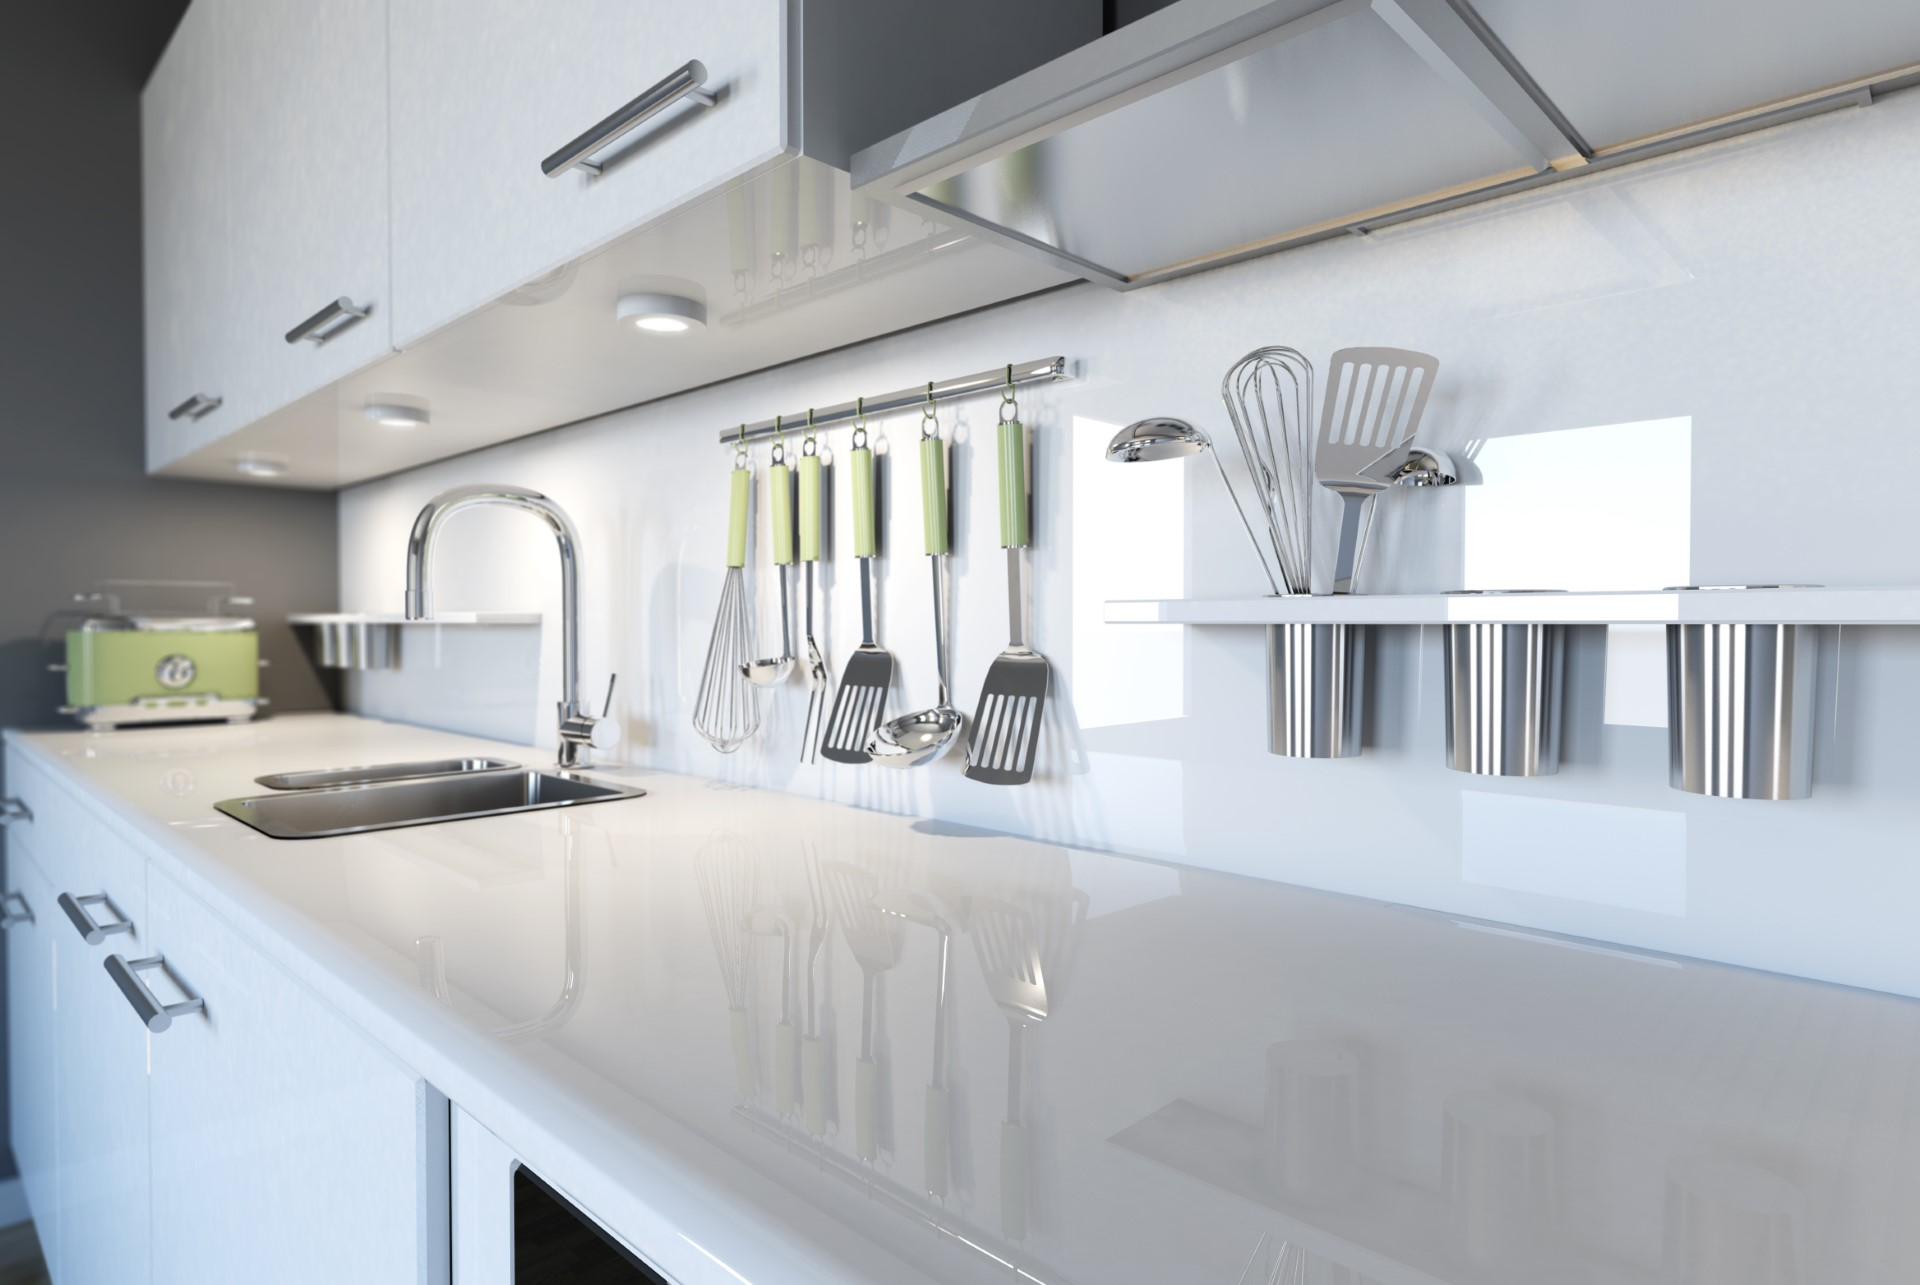 A minimalist design at its finest, this structured organization of the kitchen gives everything its own special place. This is great for someone who doesn't like to lose things and tends to be a very efficient layout. The glossy white counters add to the benefit by being more resistance to stains.